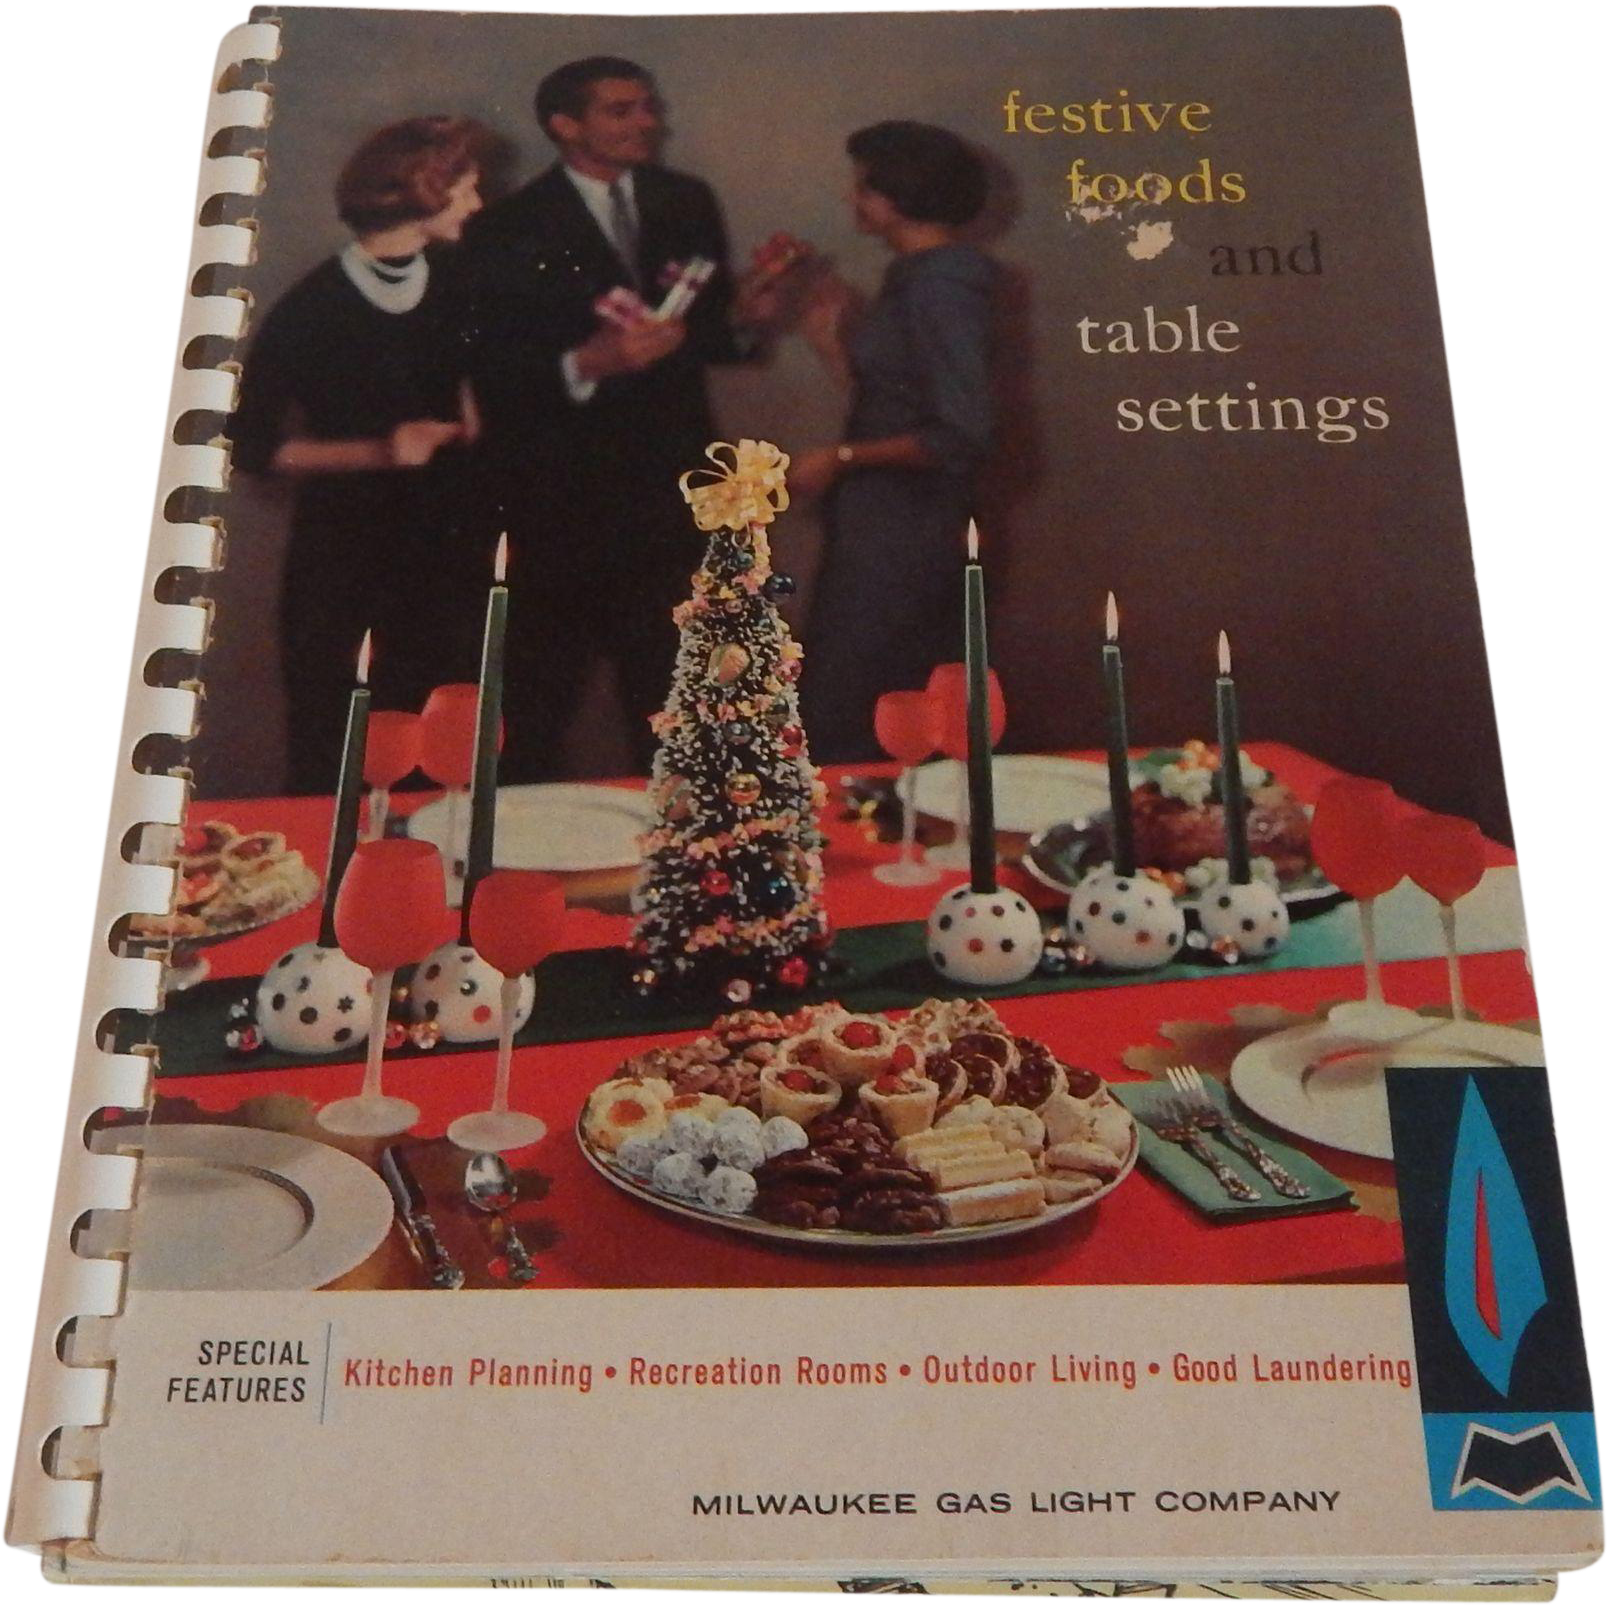 Festive Foods and Table Setting Milwaukee Gas Light Company